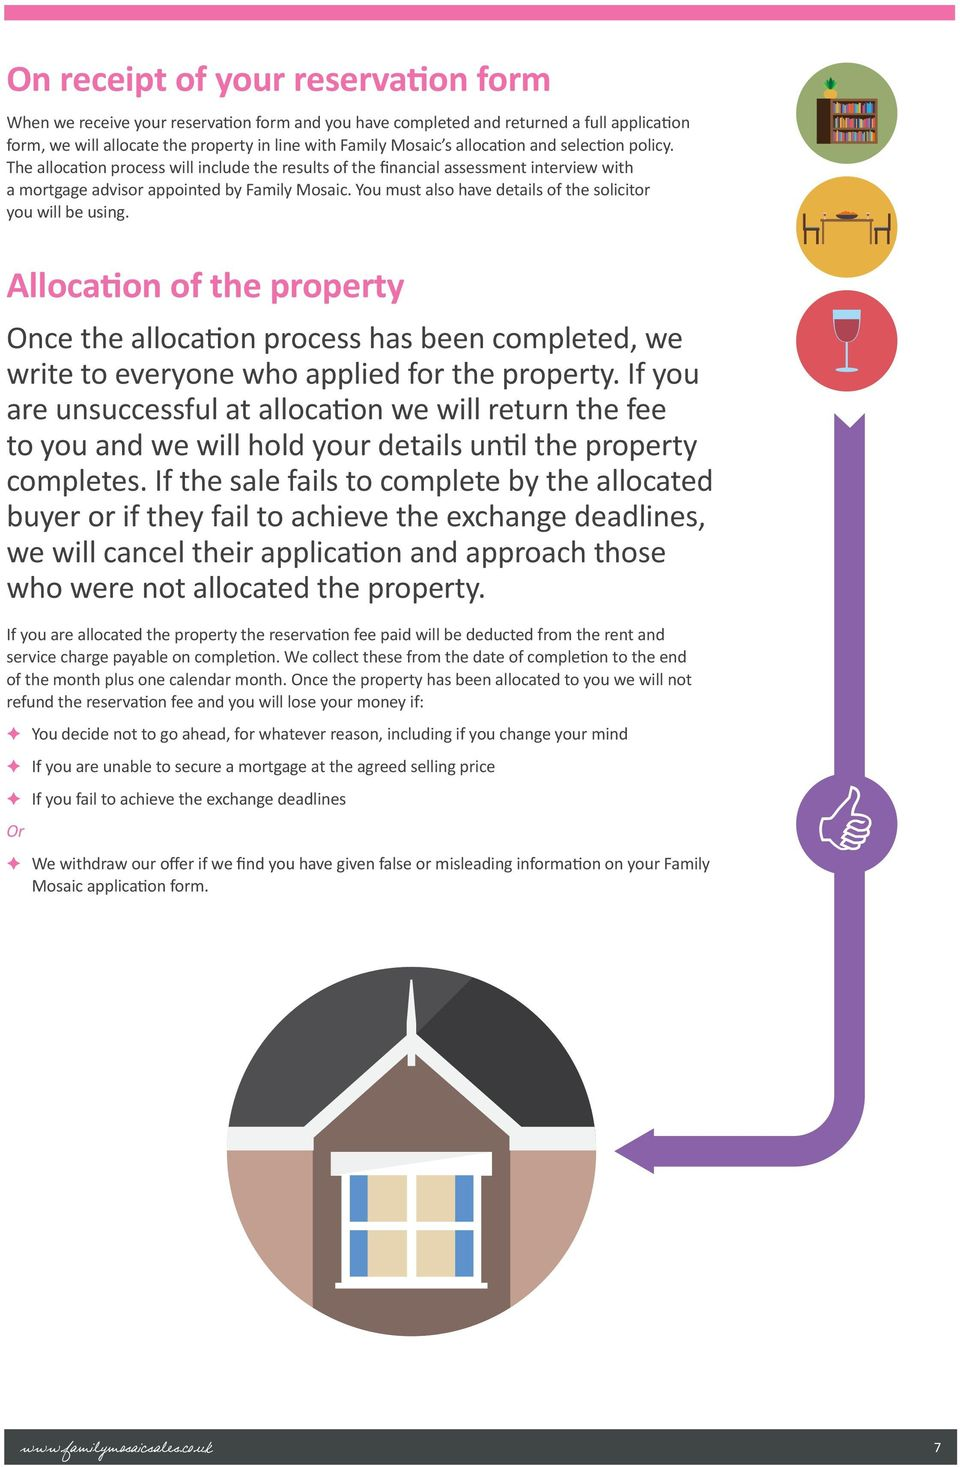 You must also have details of the solicitor you will be using. Allocation of the property Once the allocation process has been completed, we write to everyone who applied for the property.